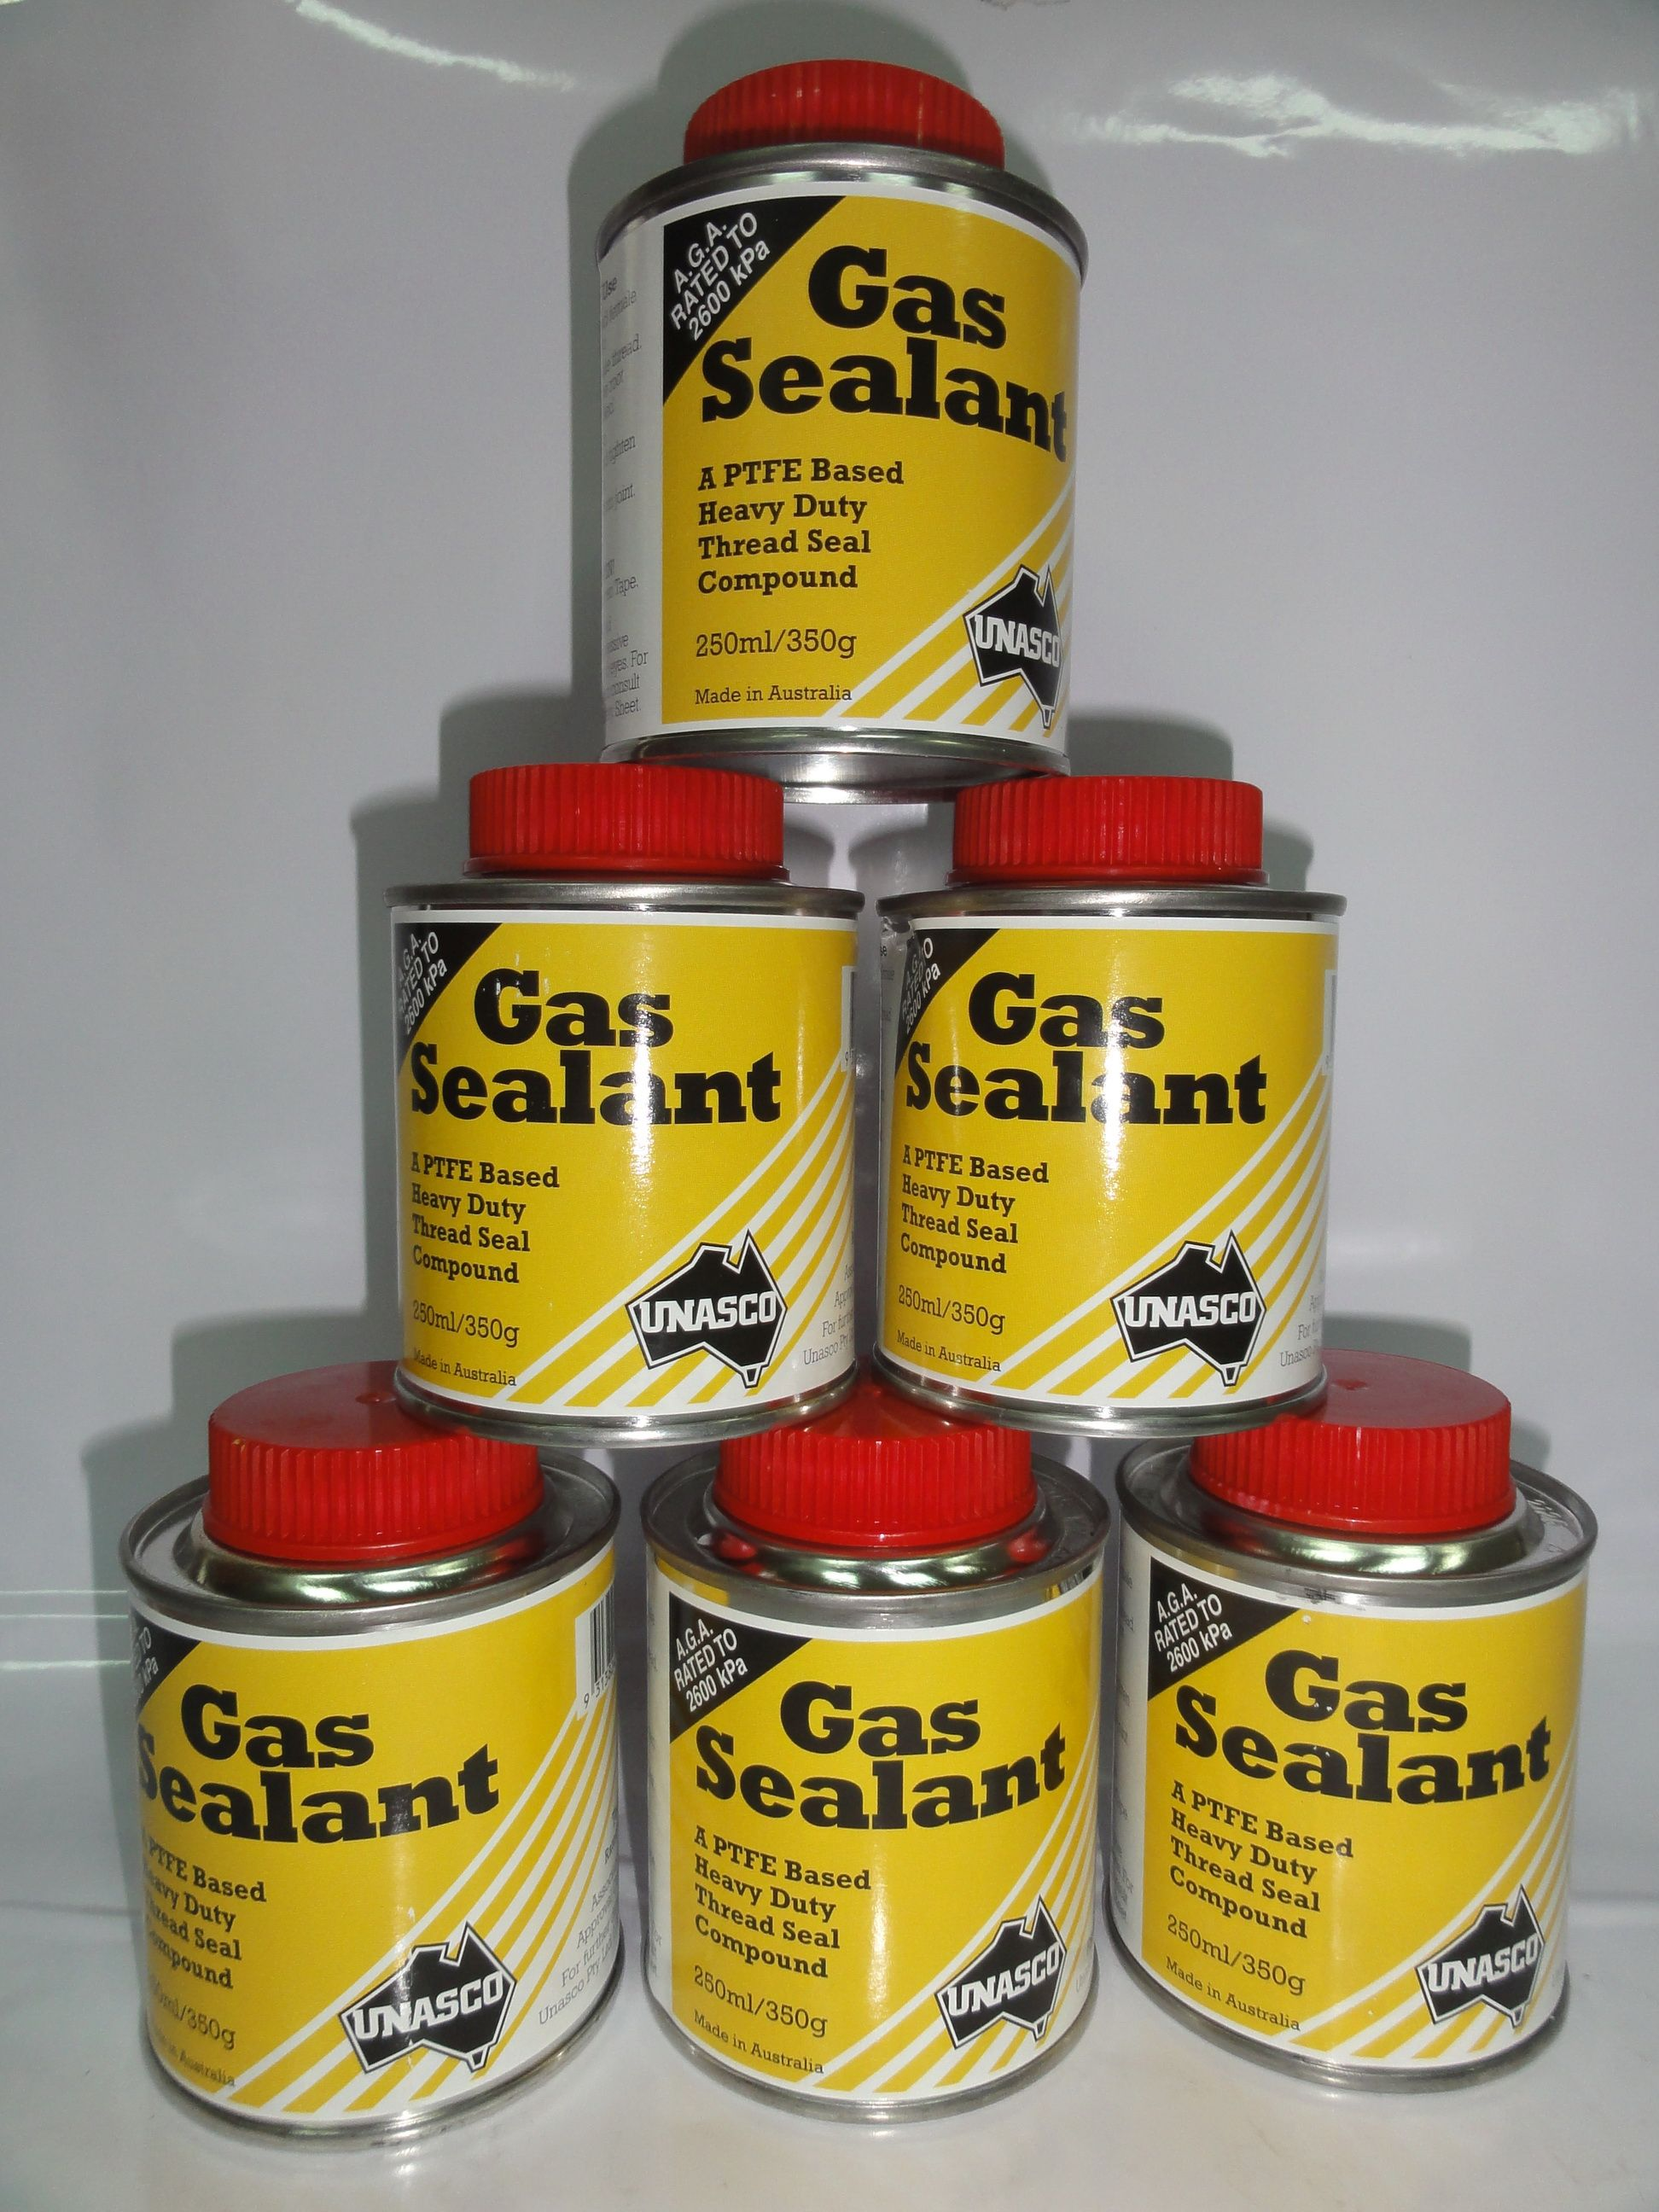 Keo lap van (Gas sealant)